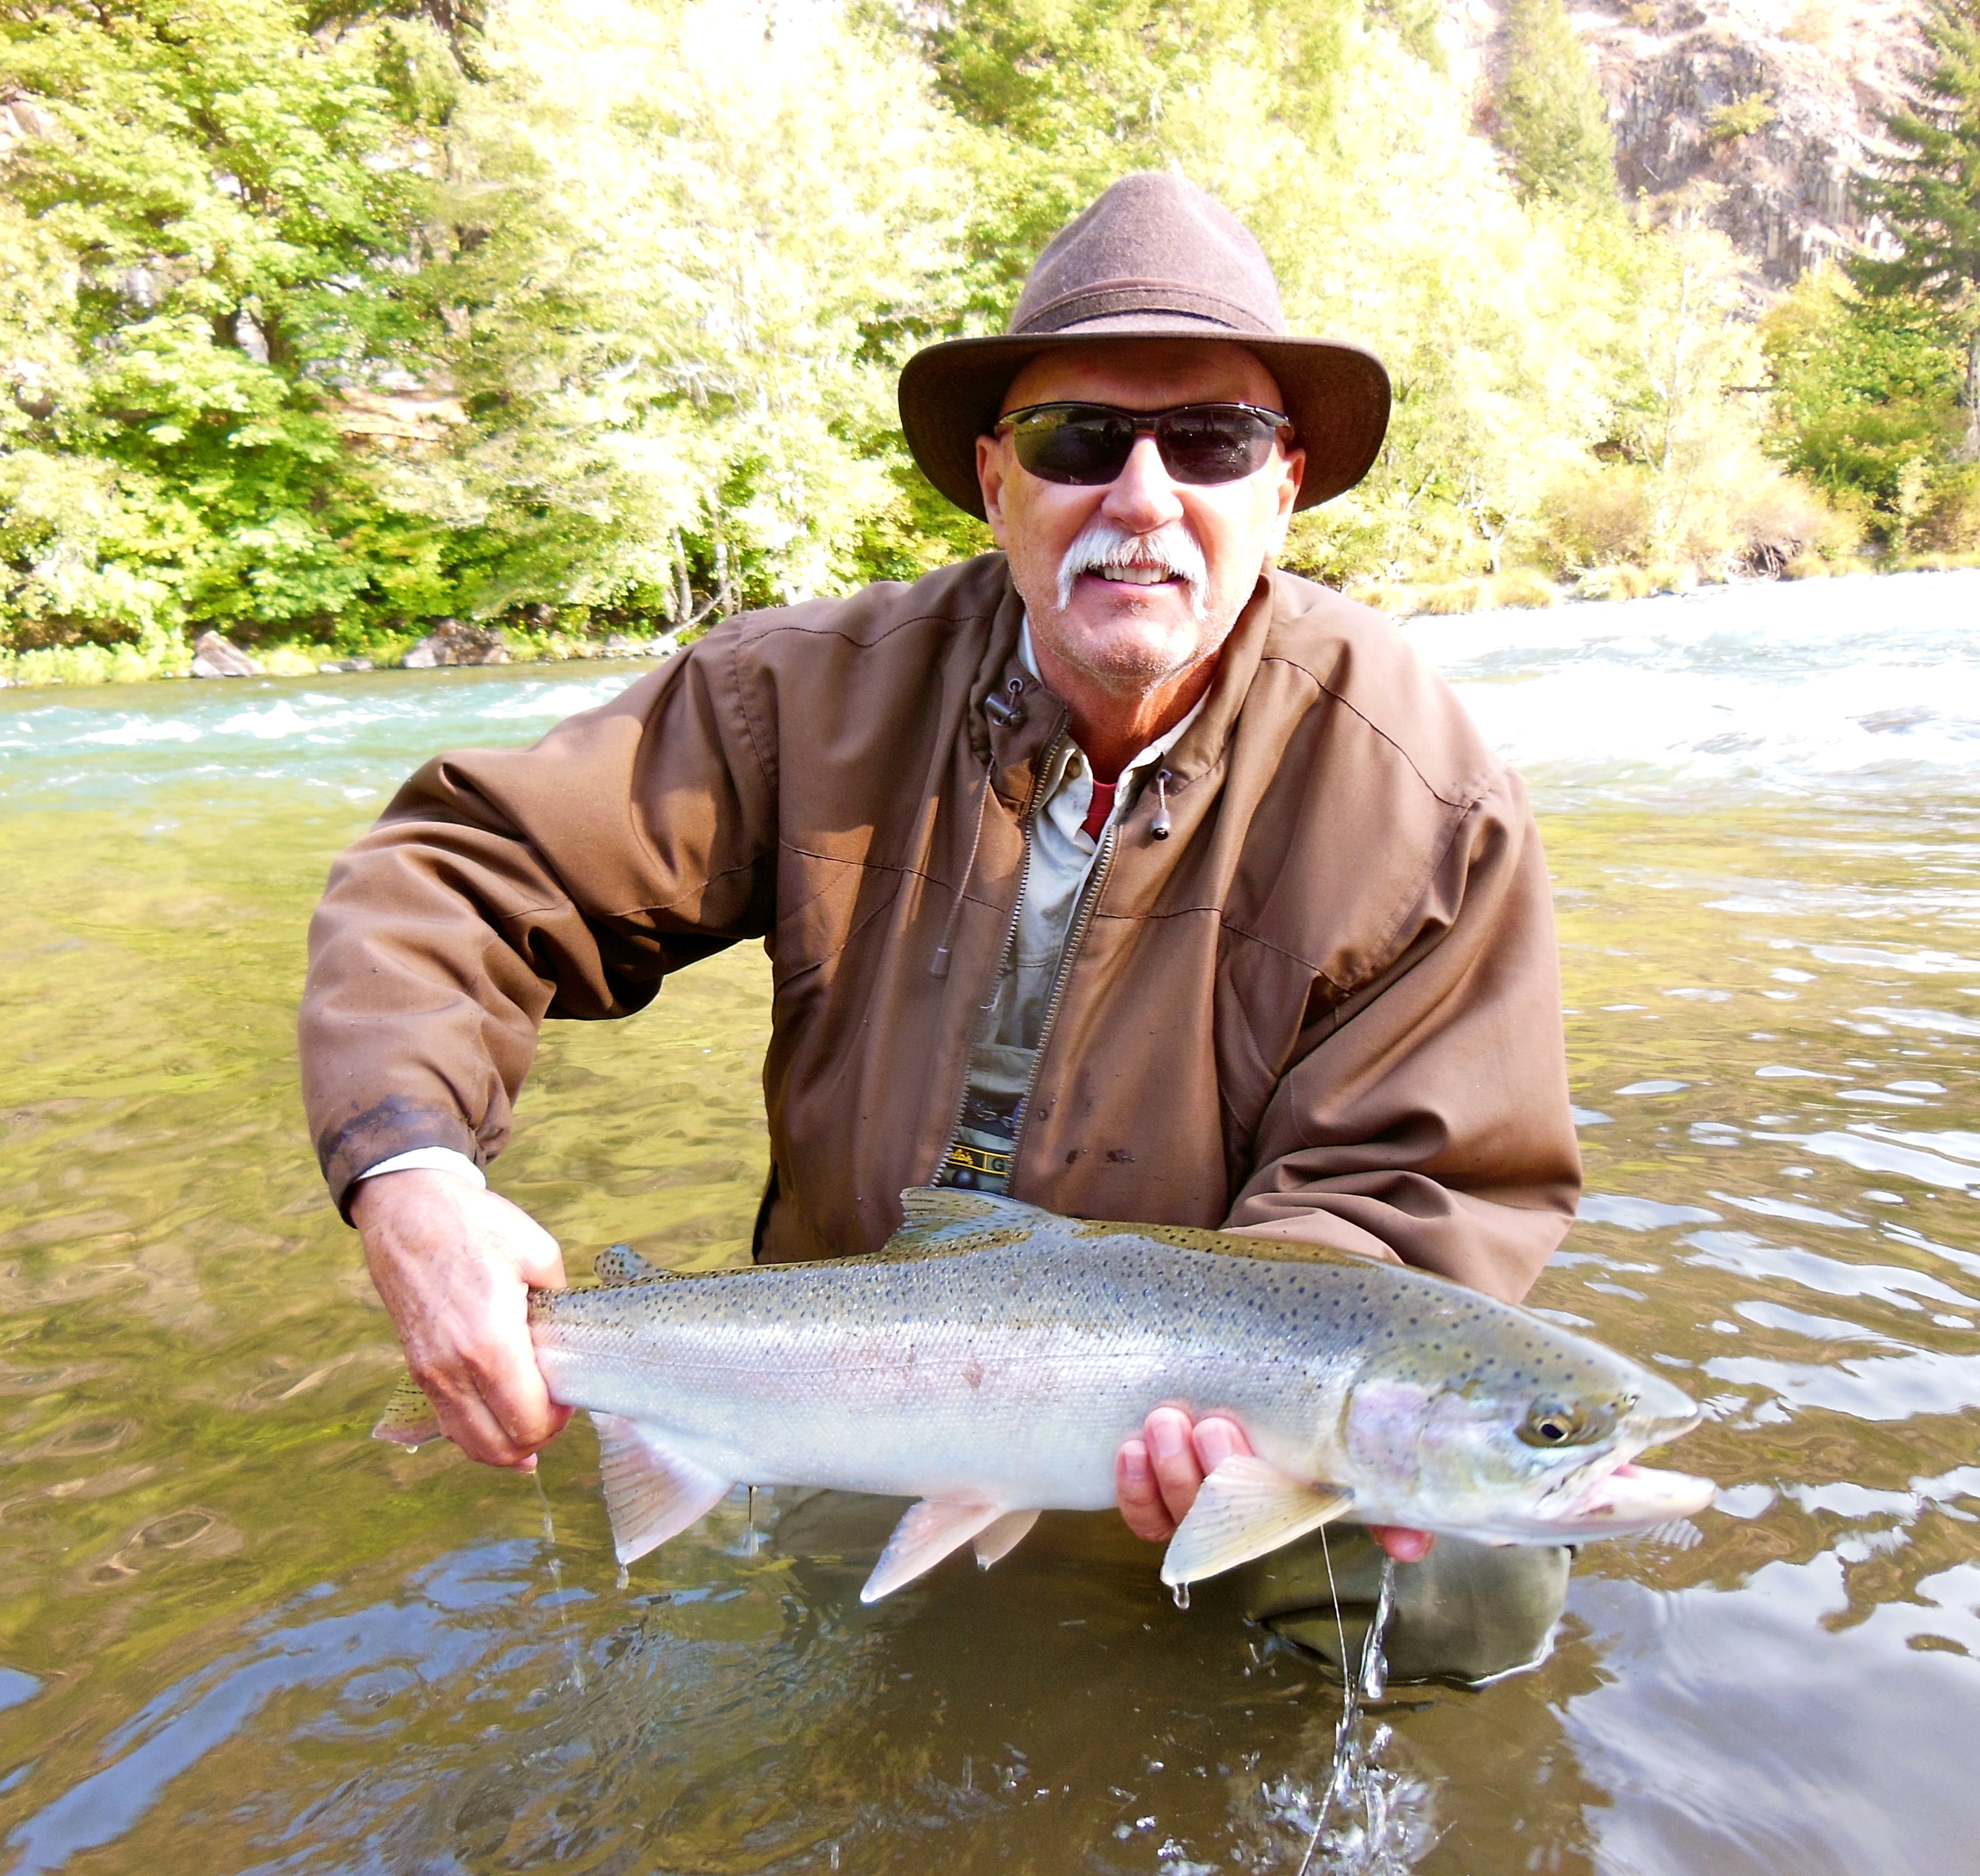 """Vincent Novits with his first North Umpqua steelhead. Vincent lost one of those epic fish the evening before, a fish that just crushed the fly and """"tore the river up""""."""